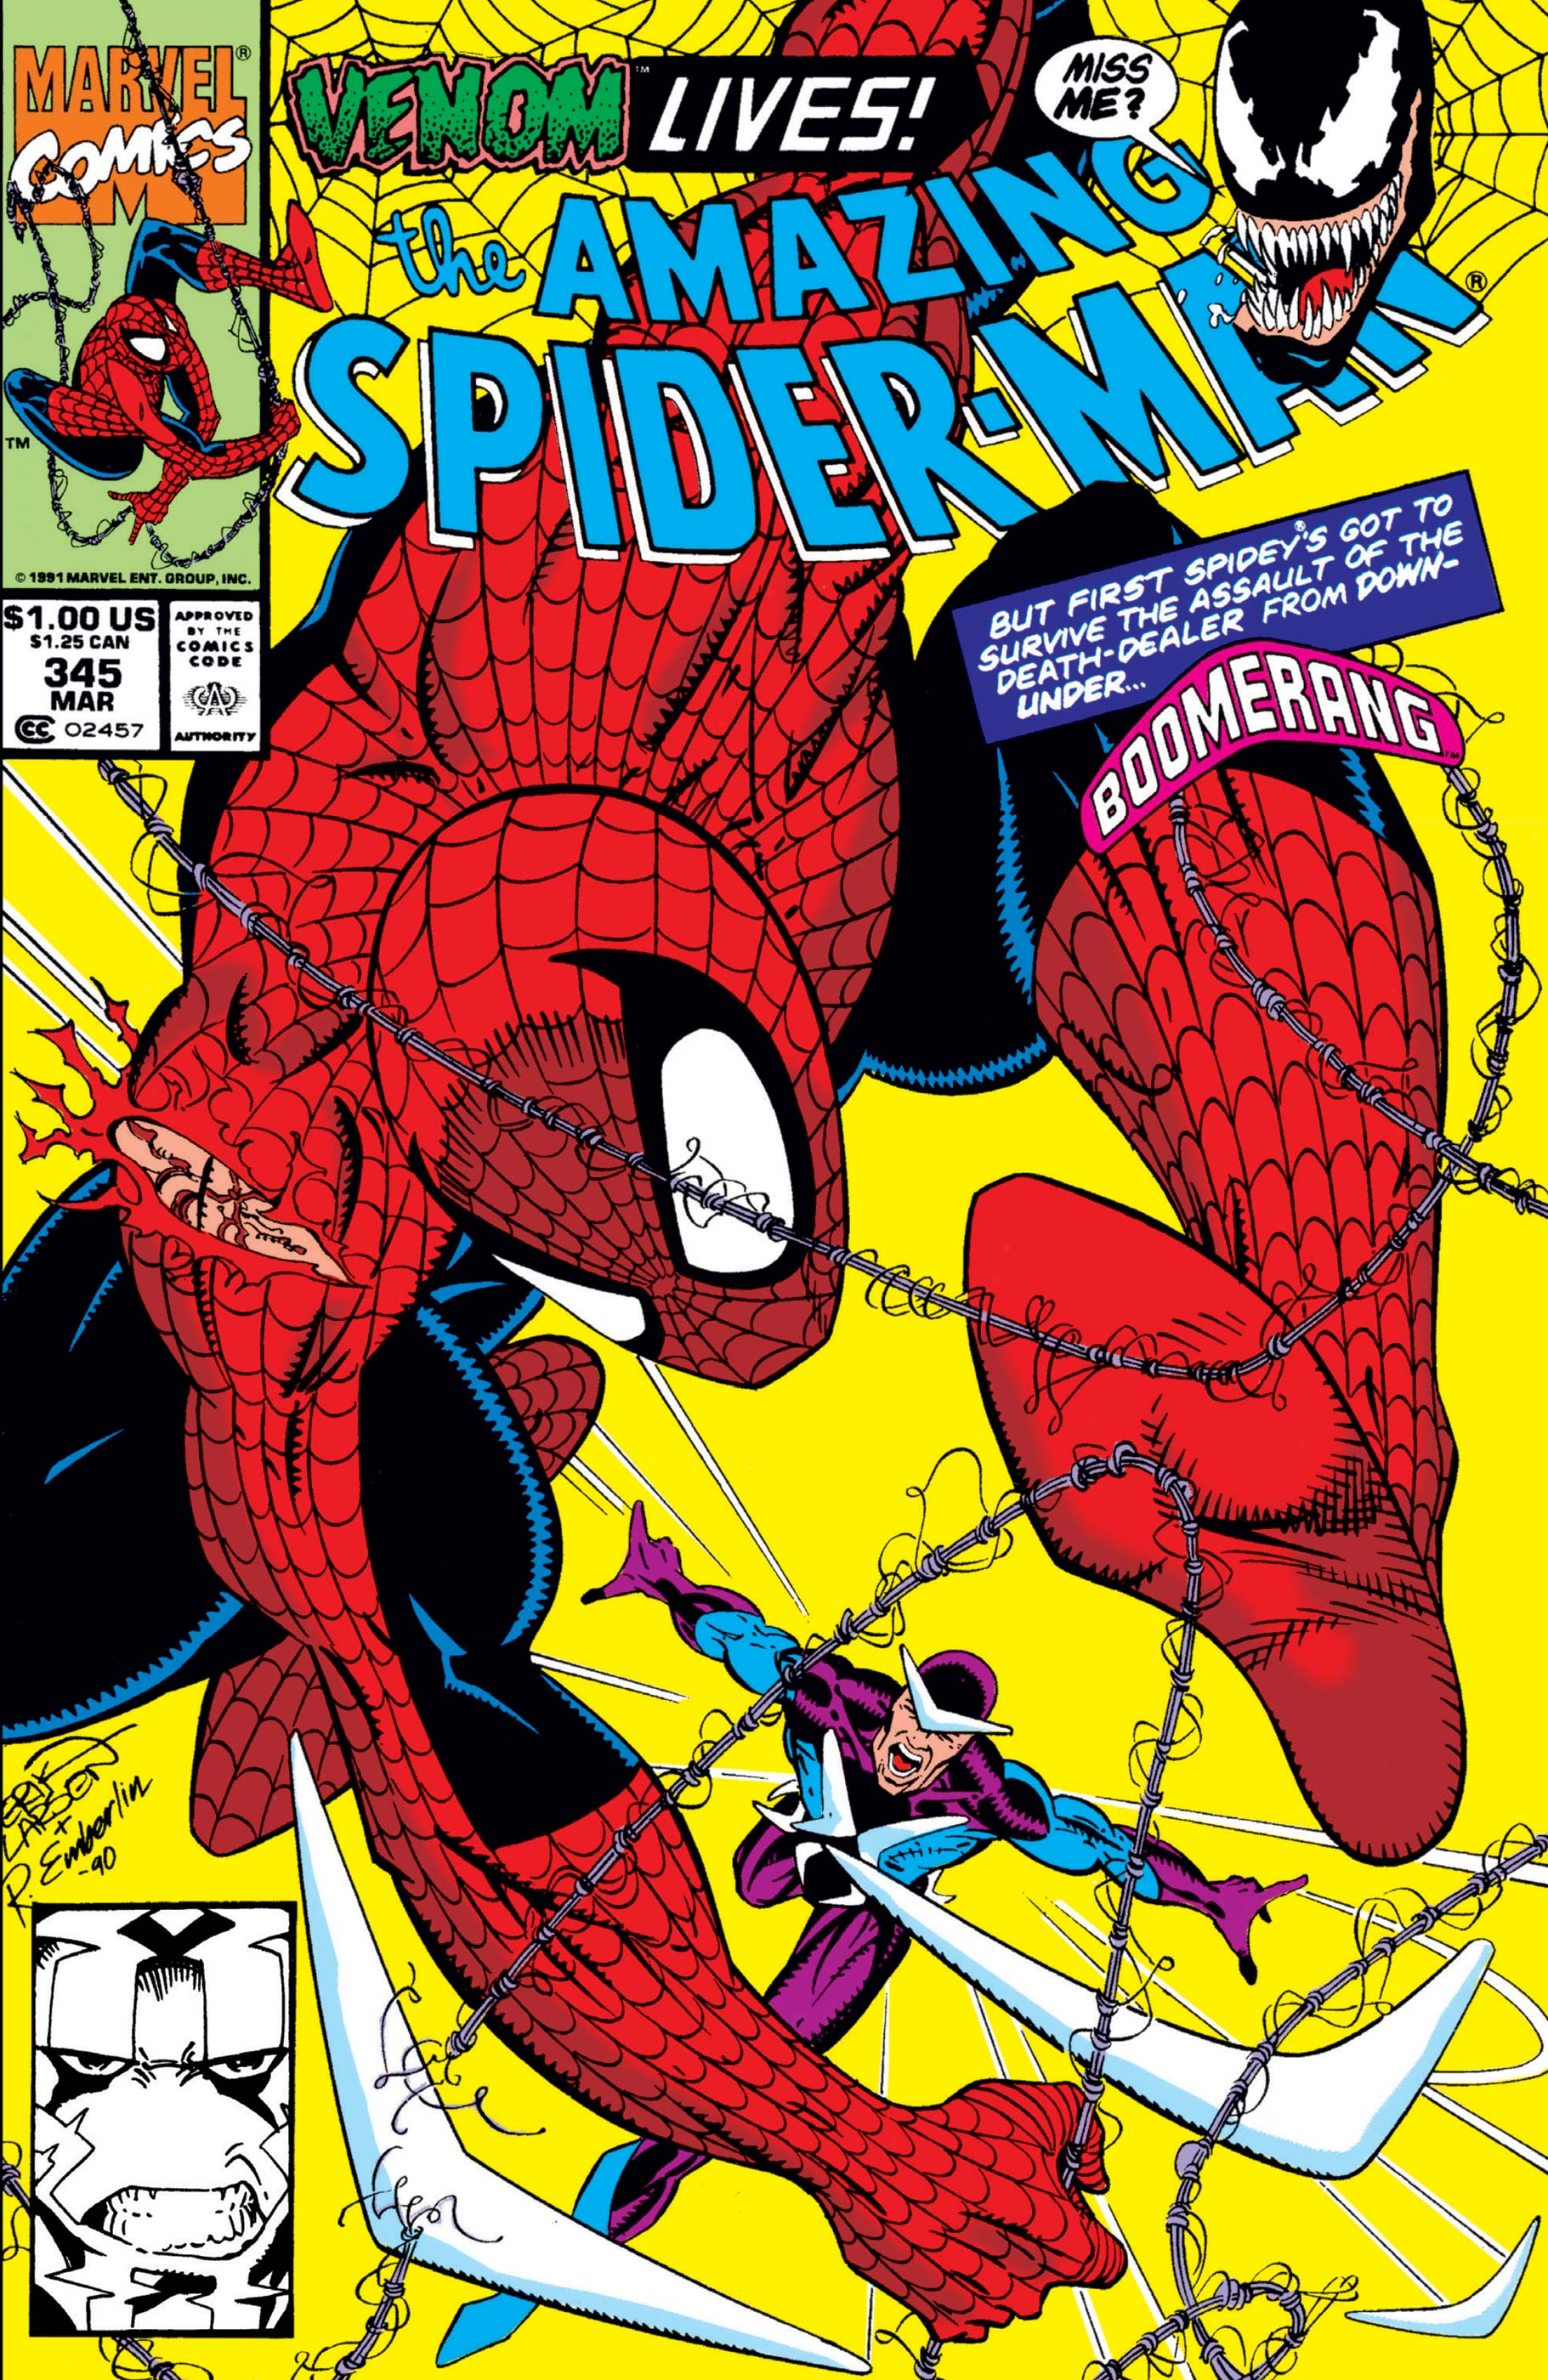 The Amazing Spider-Man (1963) #345